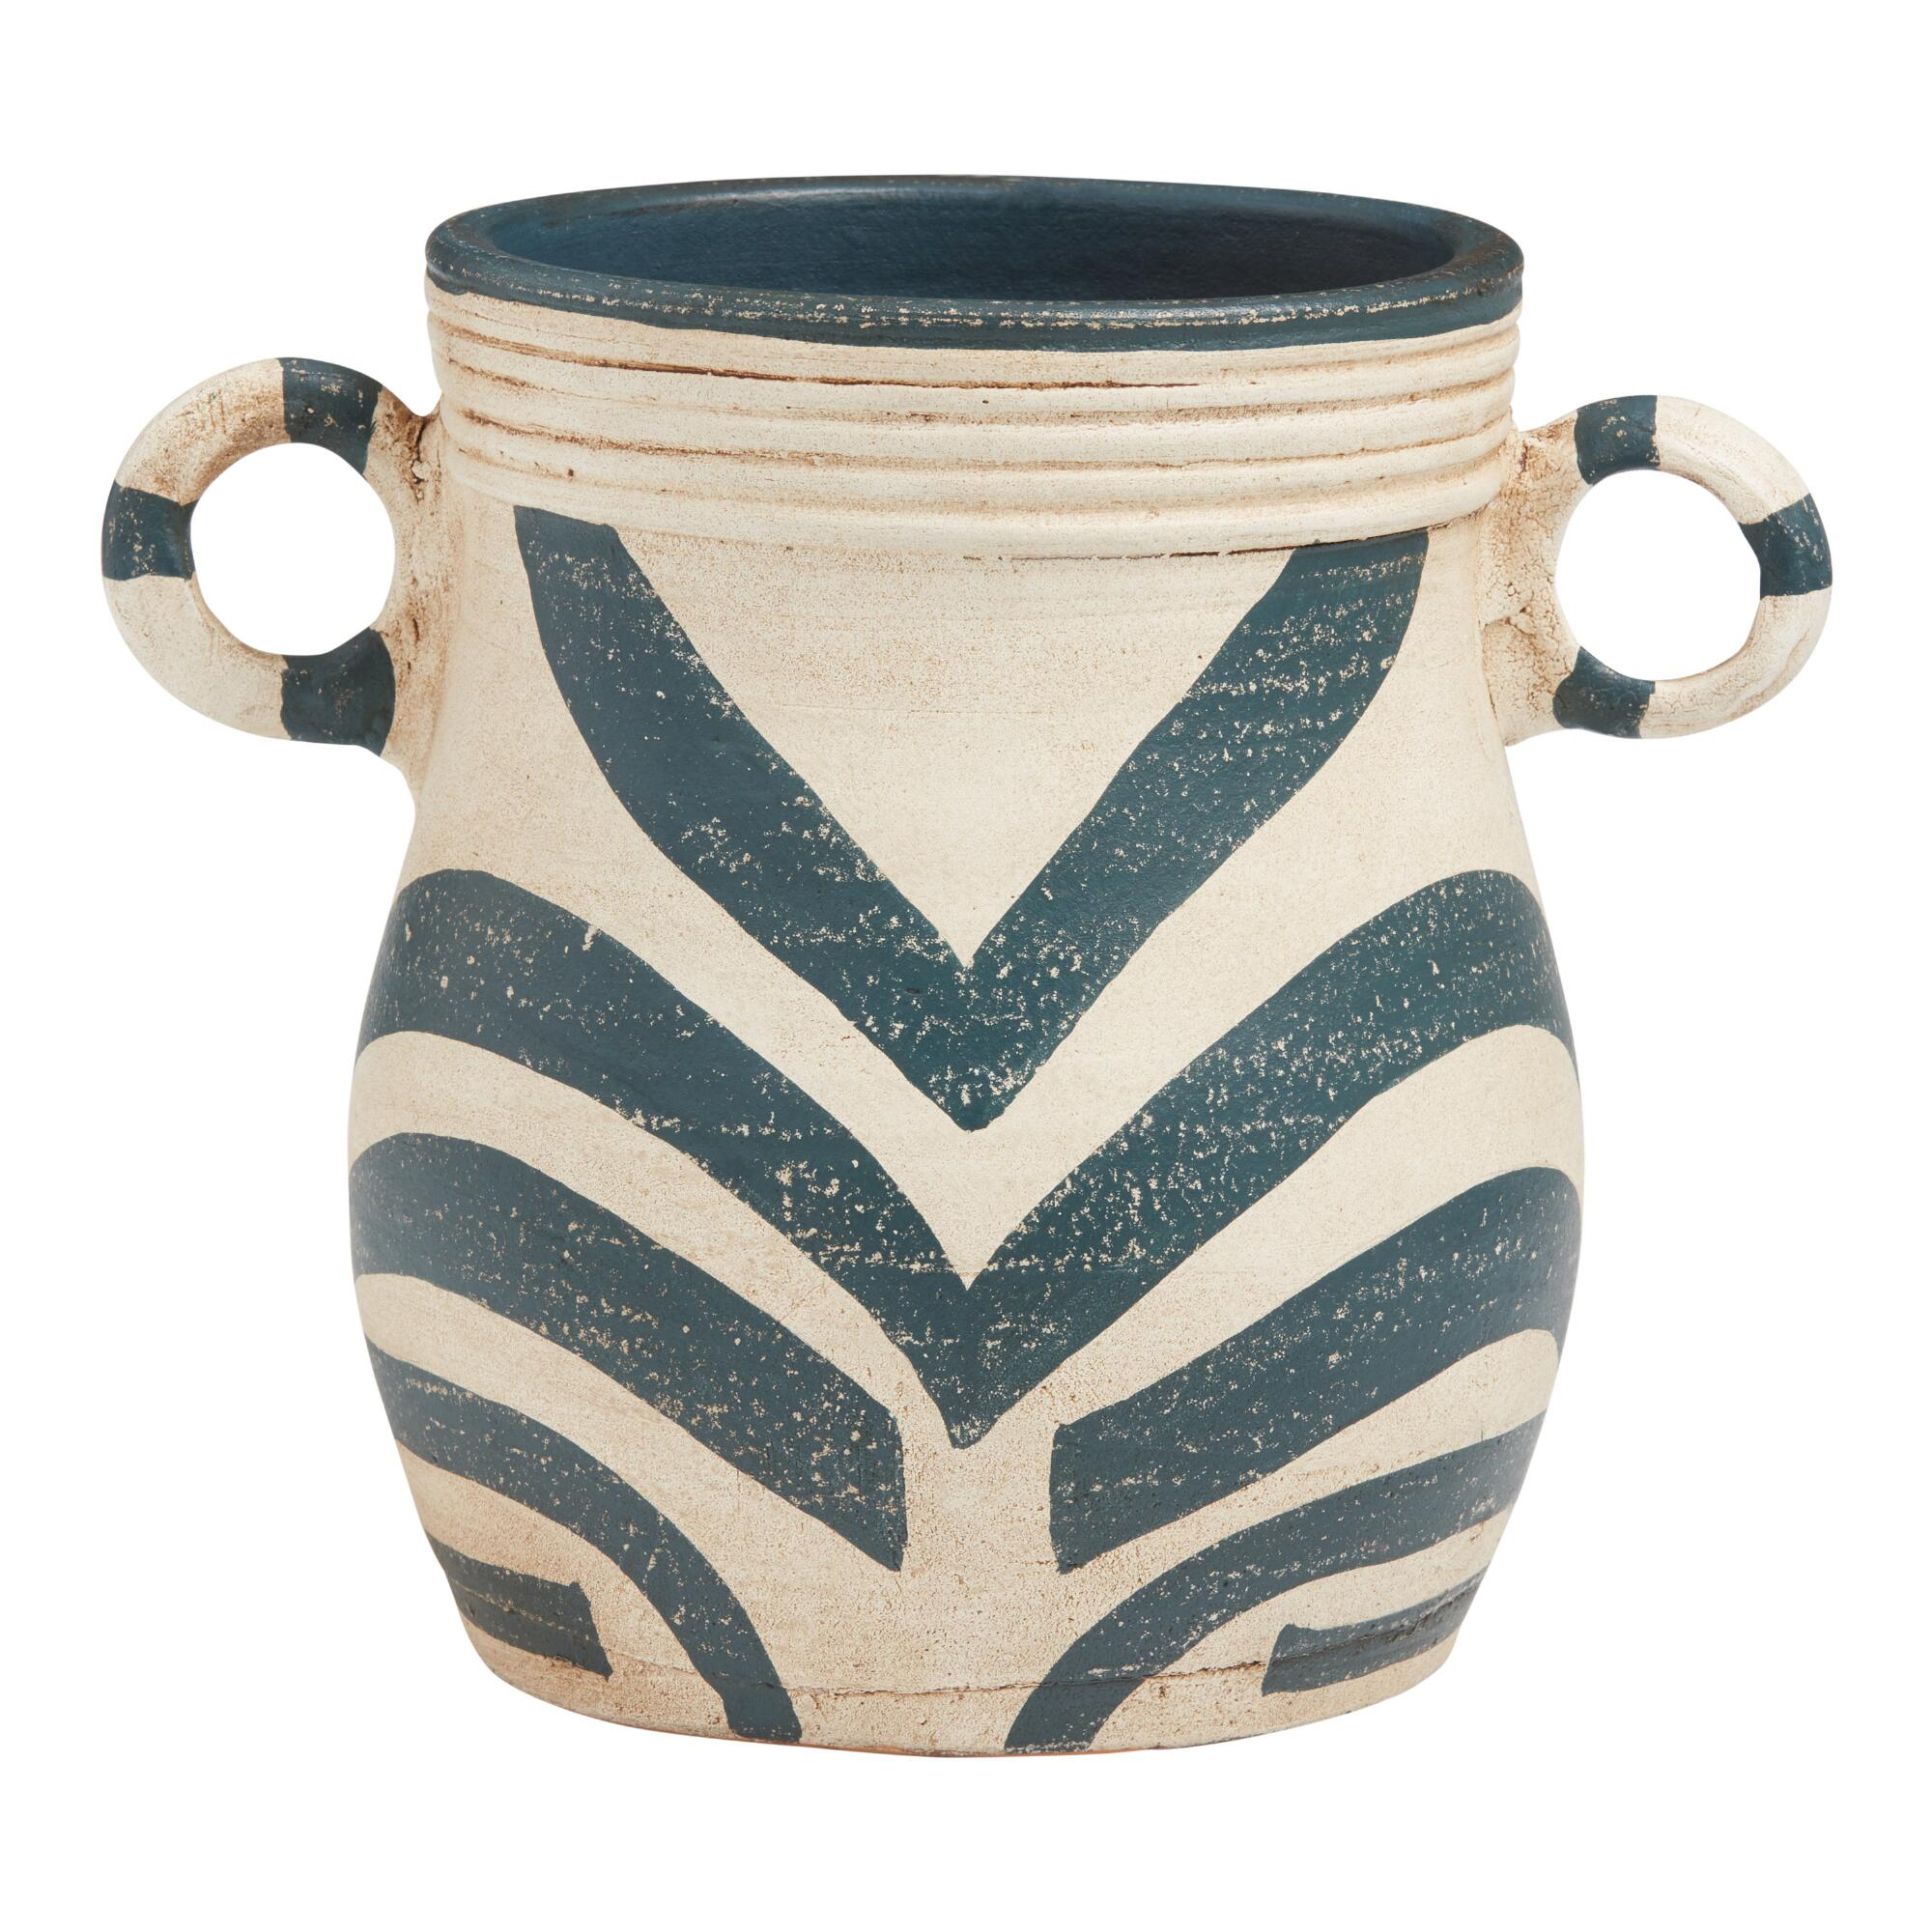 Blue And Cream Terracotta Pot With Handles $24.99